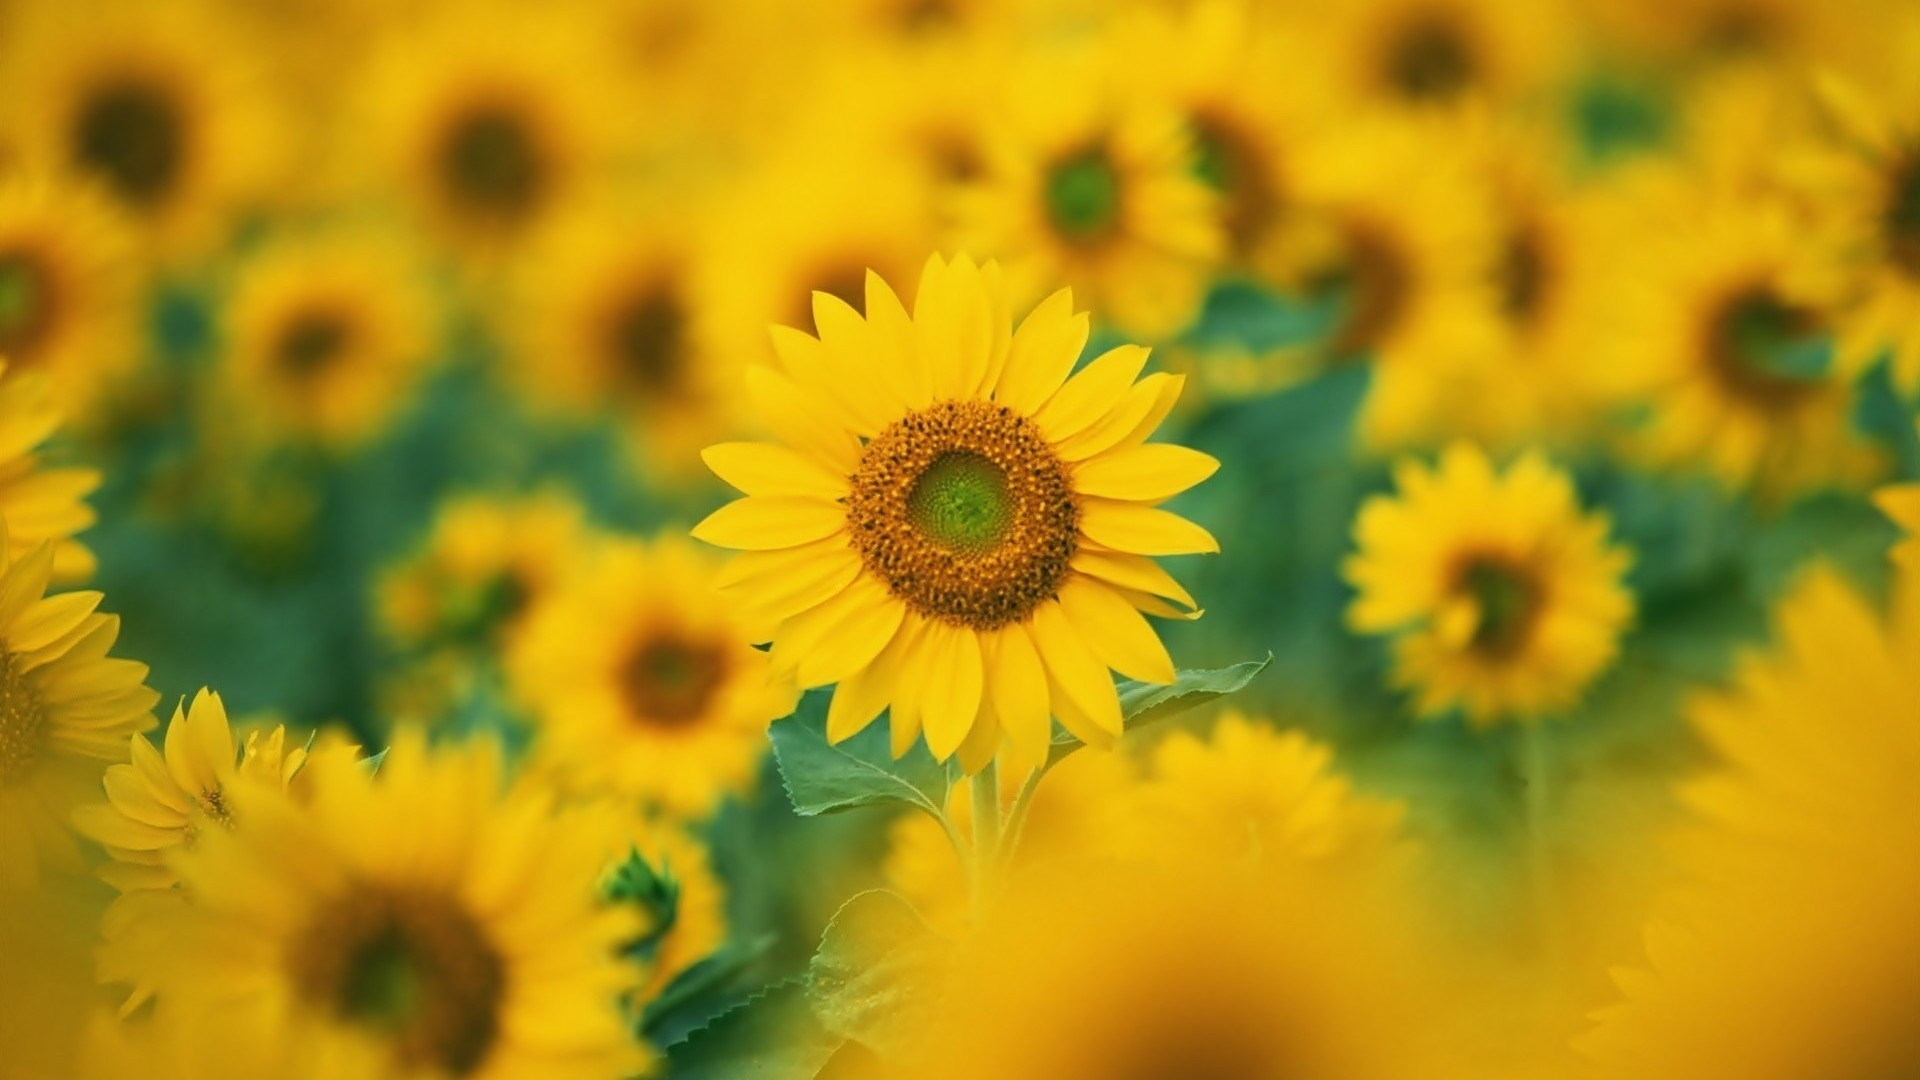 Blooming Sunflowers All Proud To Have Faces Shown They Are Indeed Beautiful And Attractive A Great Fit HD Natural Scenery Wallpaper